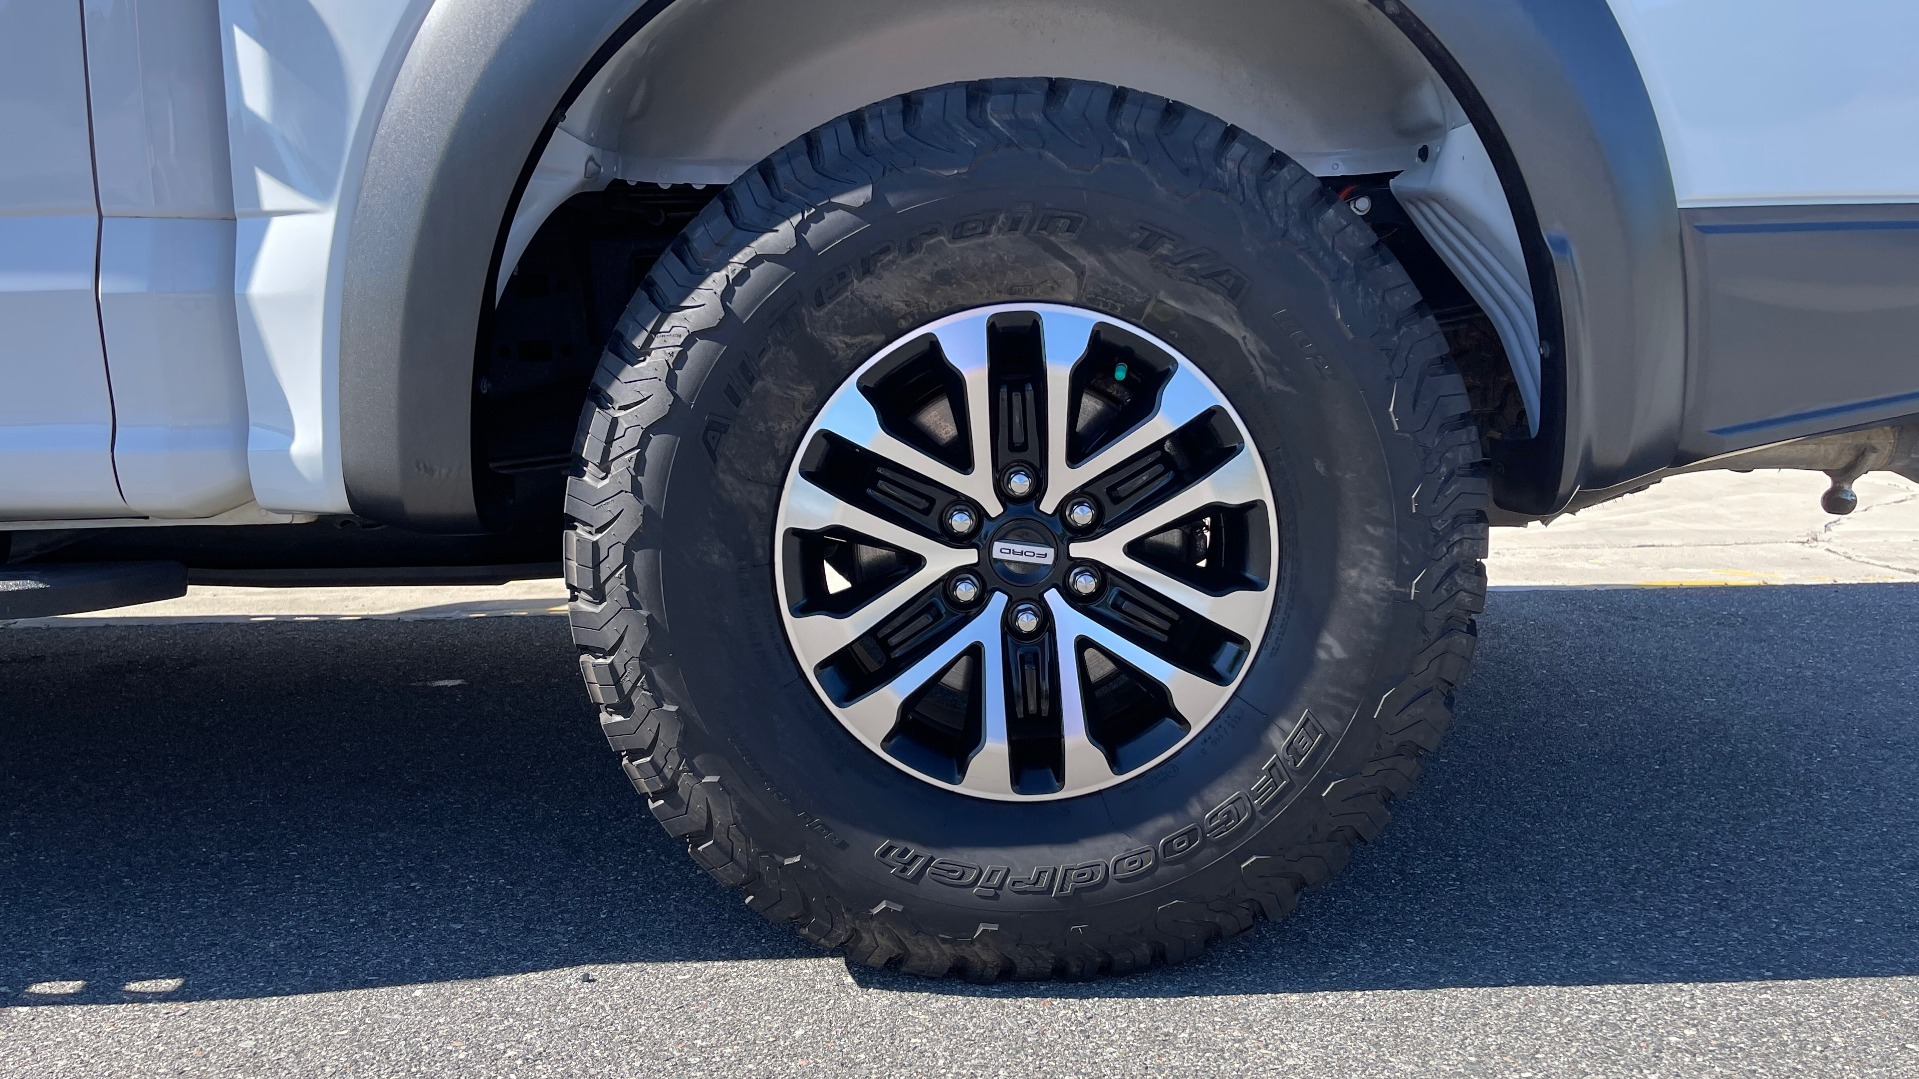 Used 2019 Ford F-150 RAPTOR 4X4 SUPERCREW / NAV / BLIS / B&O SND / REMOTE START / REARVIEW for sale $65,999 at Formula Imports in Charlotte NC 28227 72